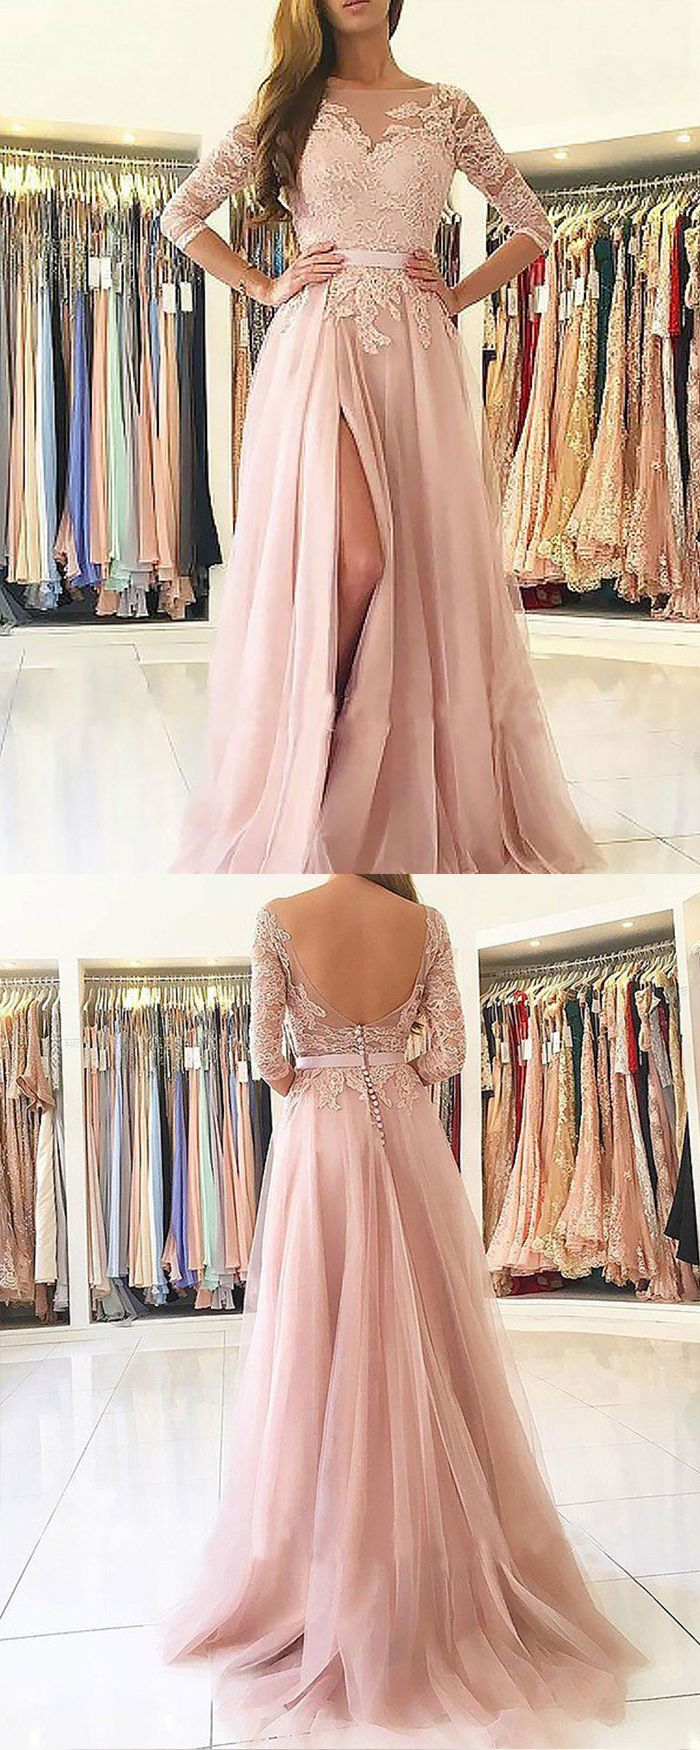 Bateau pink appliqued chiffon slit long prom dress with length